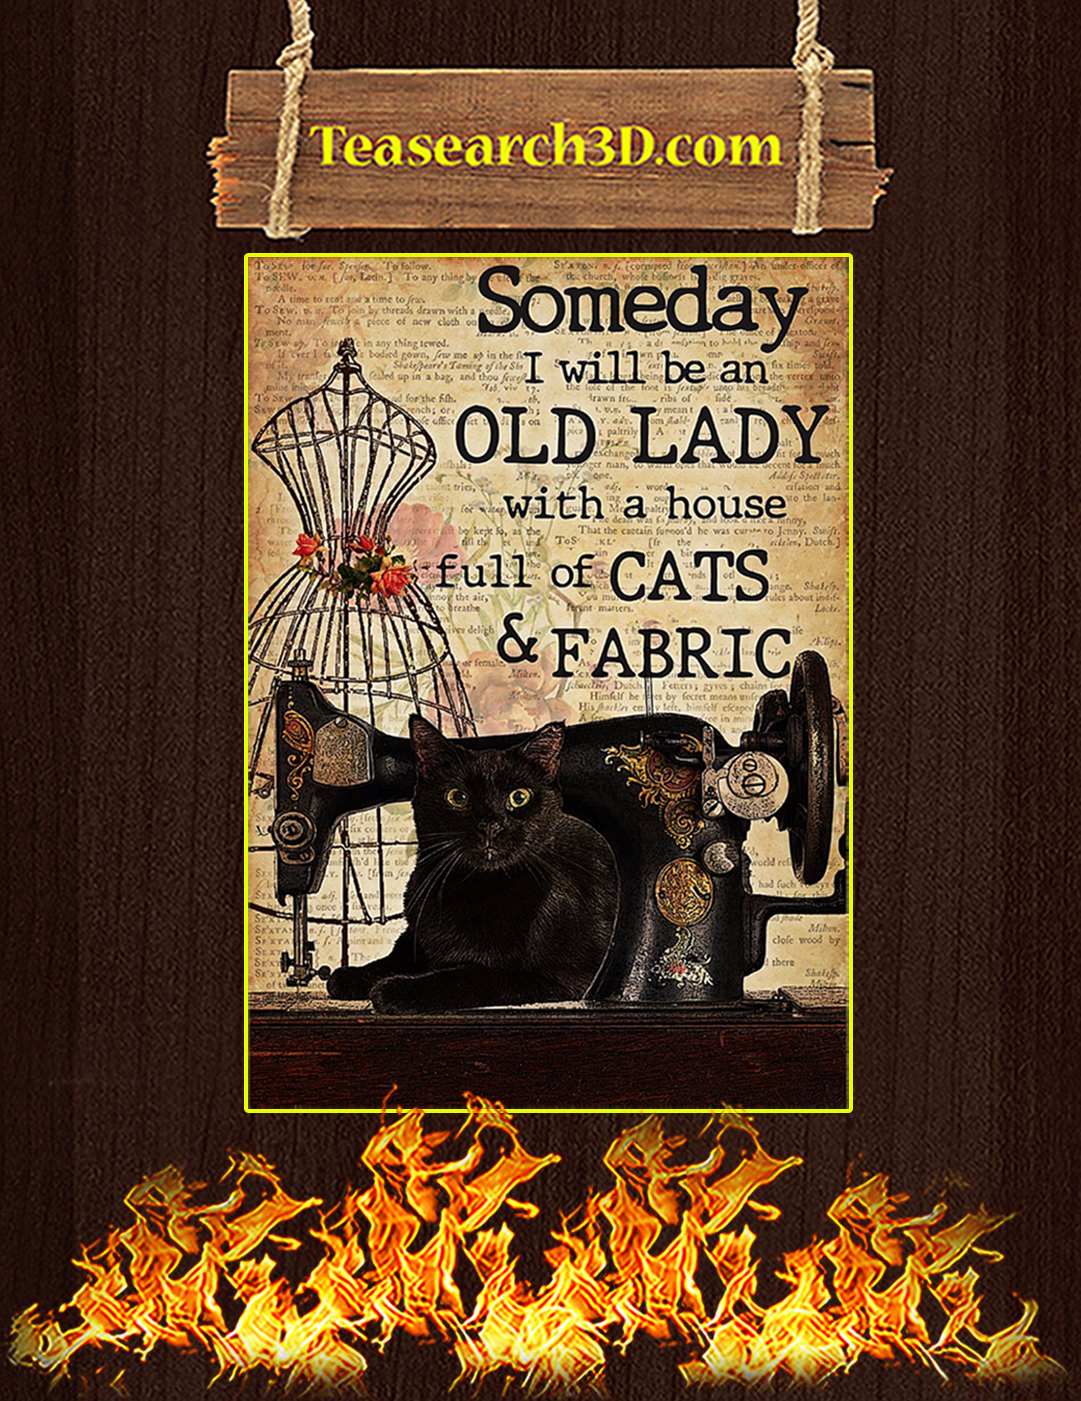 Sewing Someday I will be an old lady with a house full of cats and fabric poster A2